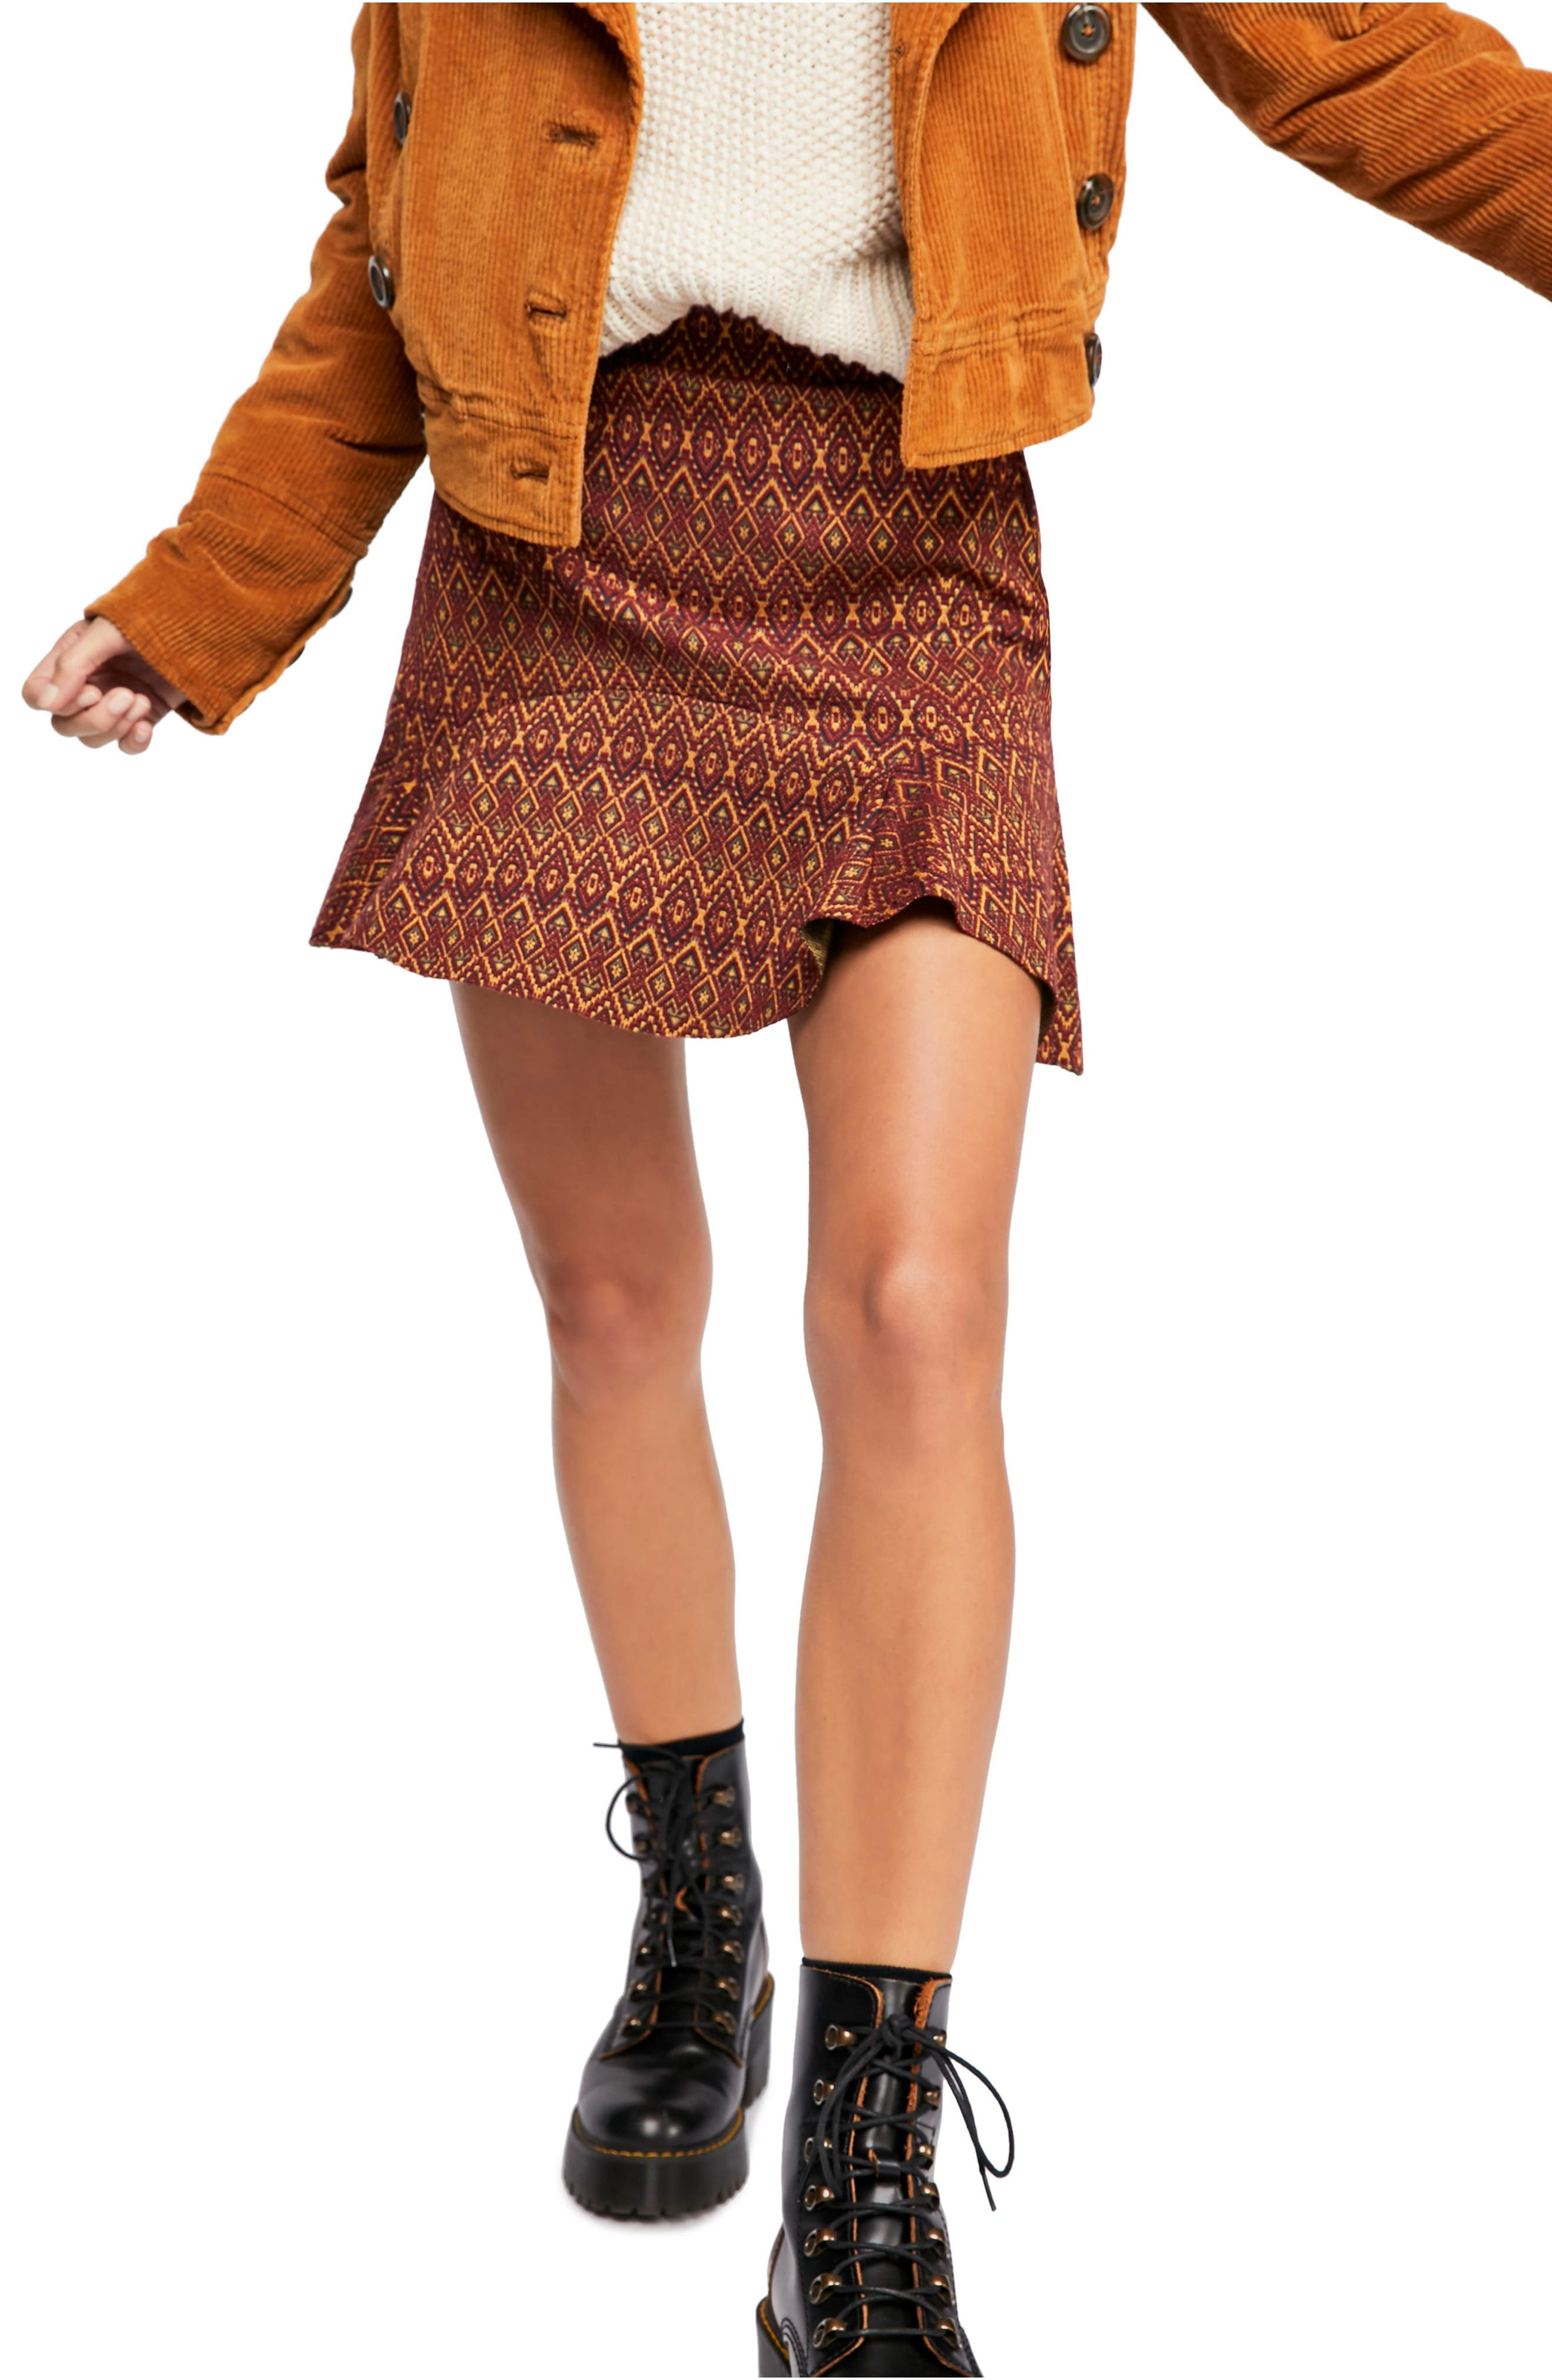 Free People When In Rome Miniskirt, Red